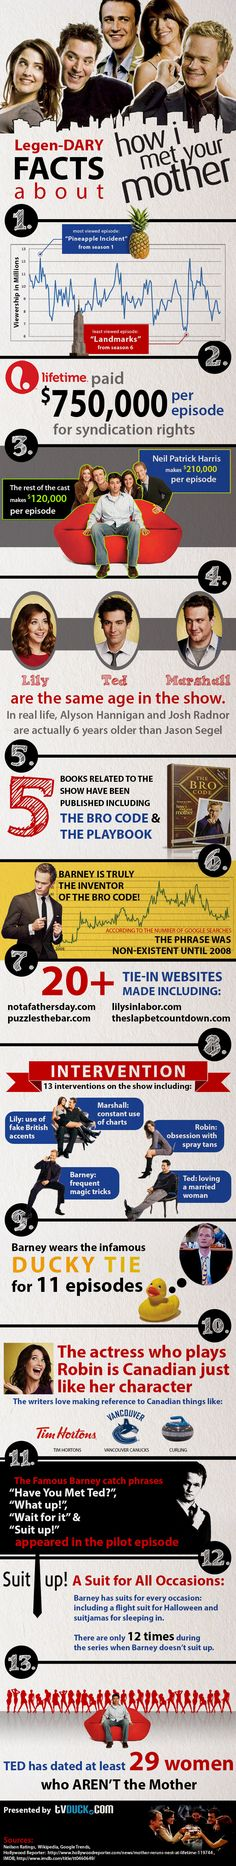 Legen-DARY facts about How I Met Your Mother - How I Met Your Mother has been making us laugh since 2005. TVDuck has put together an infographic highlighting some of the amazing stats behind one of our favorite shows.